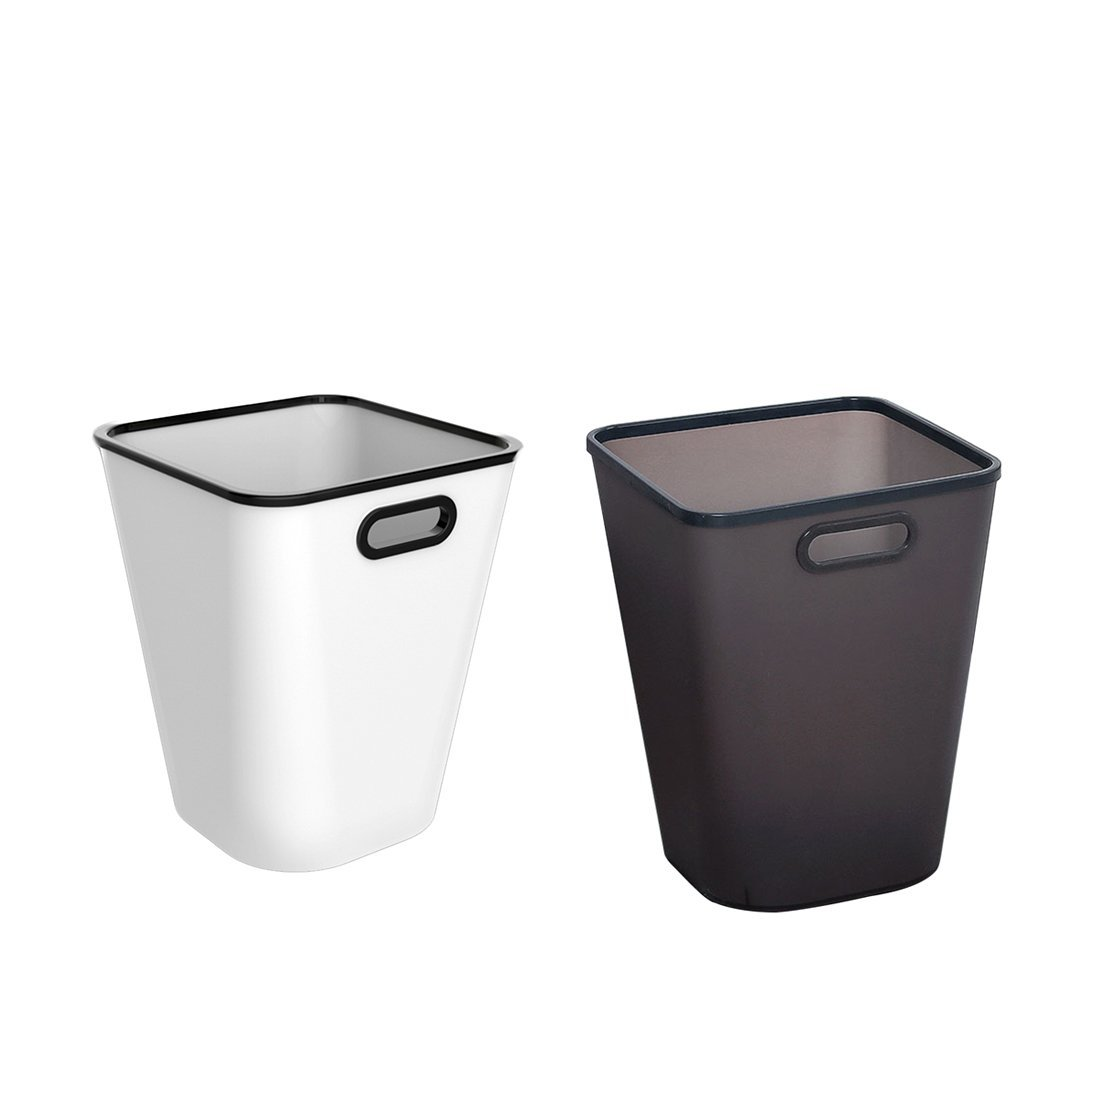 XSHION Trash Can Set of 2, Plastic Waste Paper Basket for Office/Recycle Bins for Home Wastebasket 4 Gallon (White,Black)